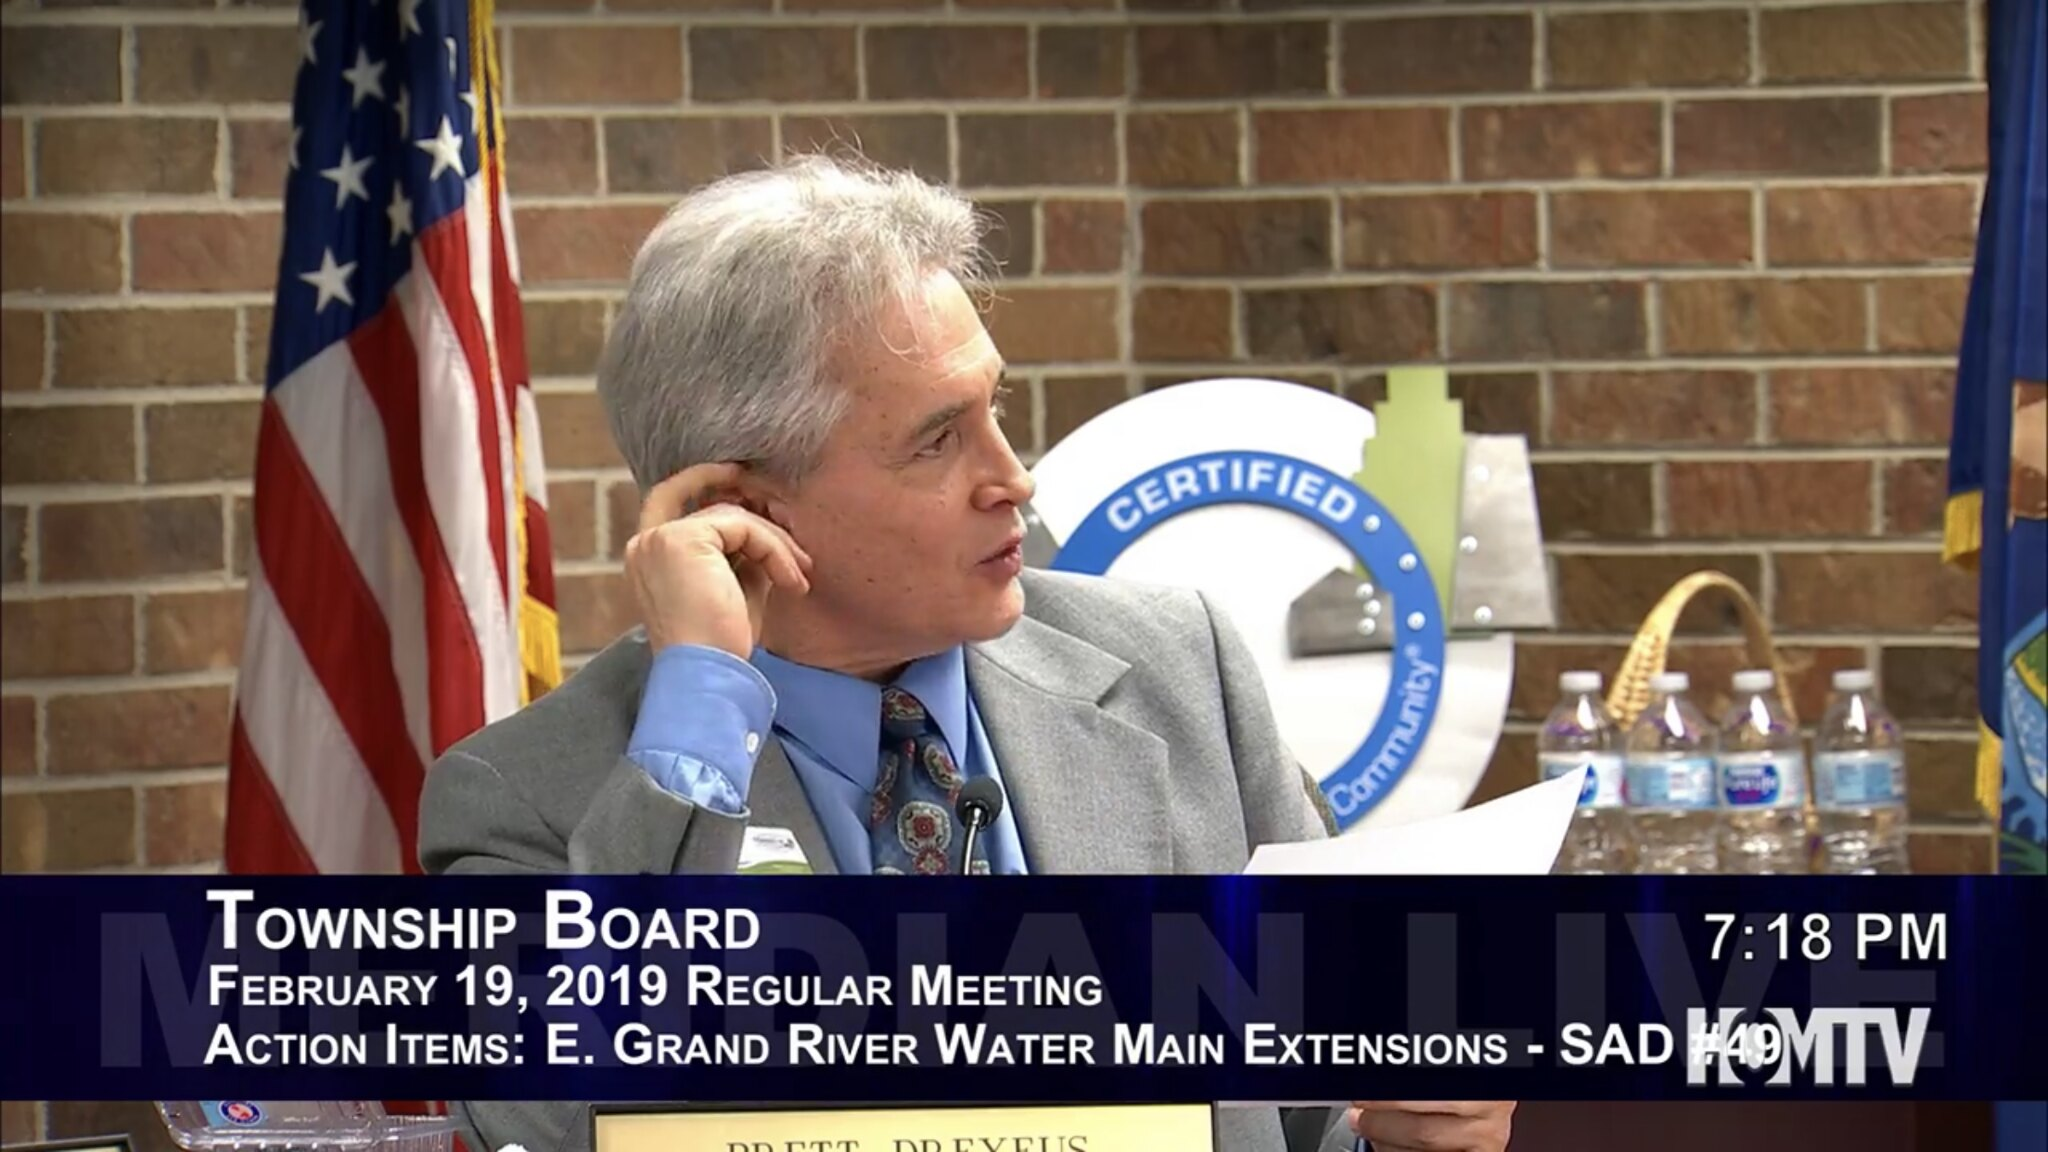 Township Board Votes to Move Forward with Grand River Water Main Expansion